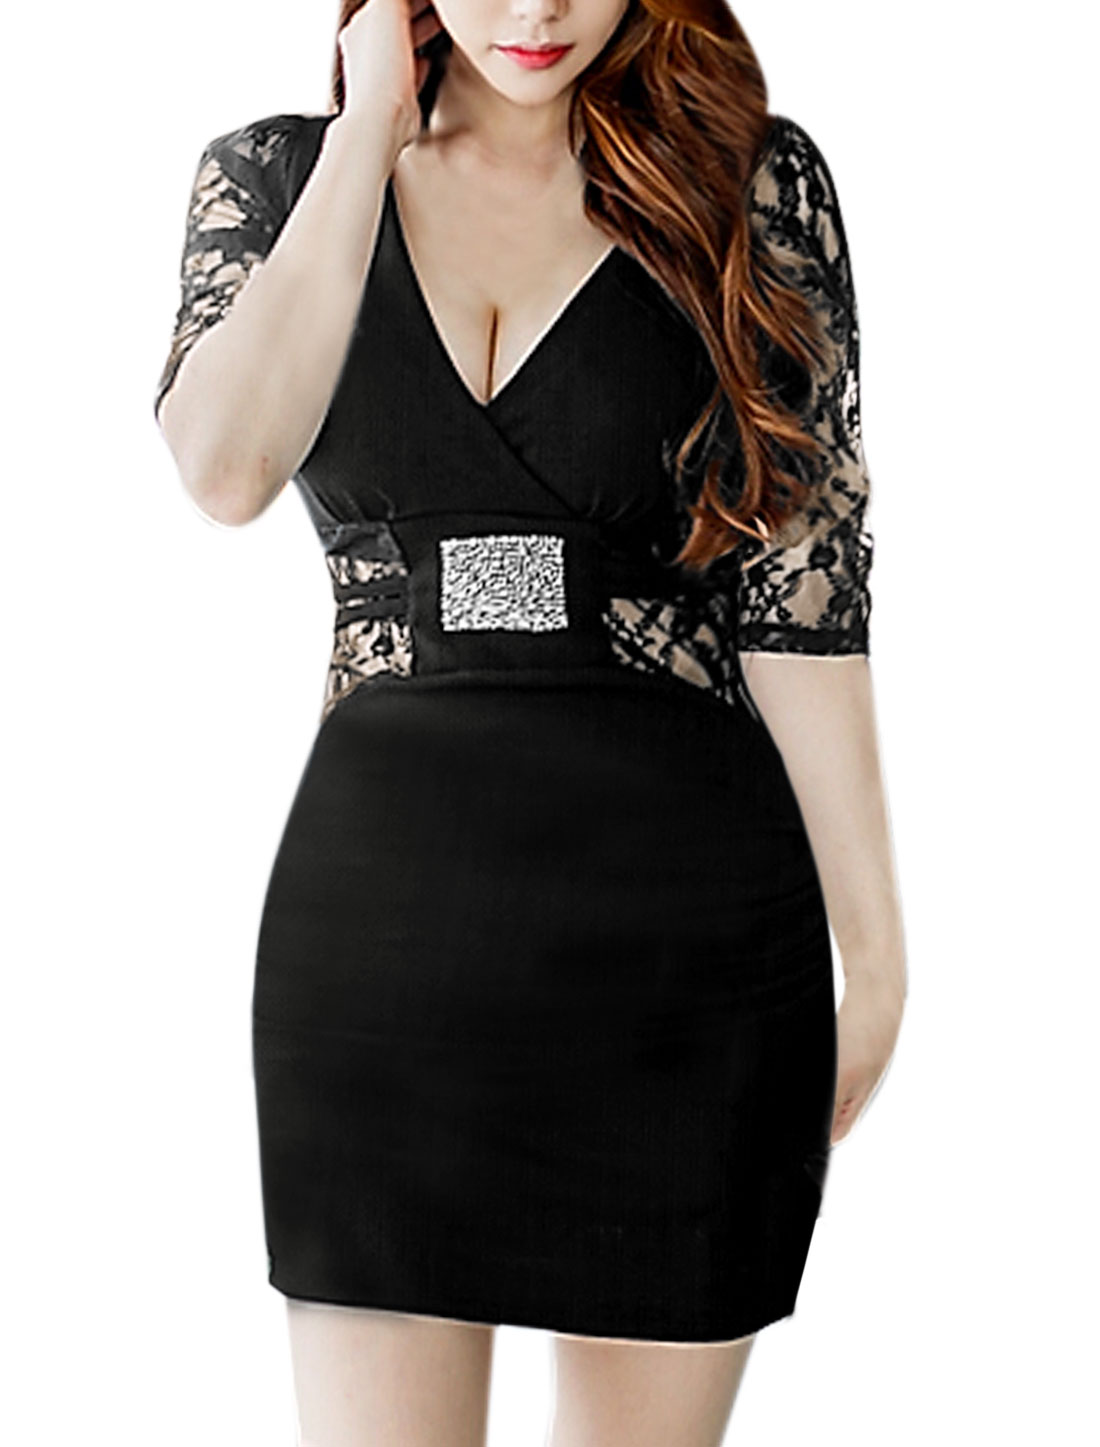 Women 1/2 Sleeves Lace Panel Crossover V Neck Mini Dress Black M